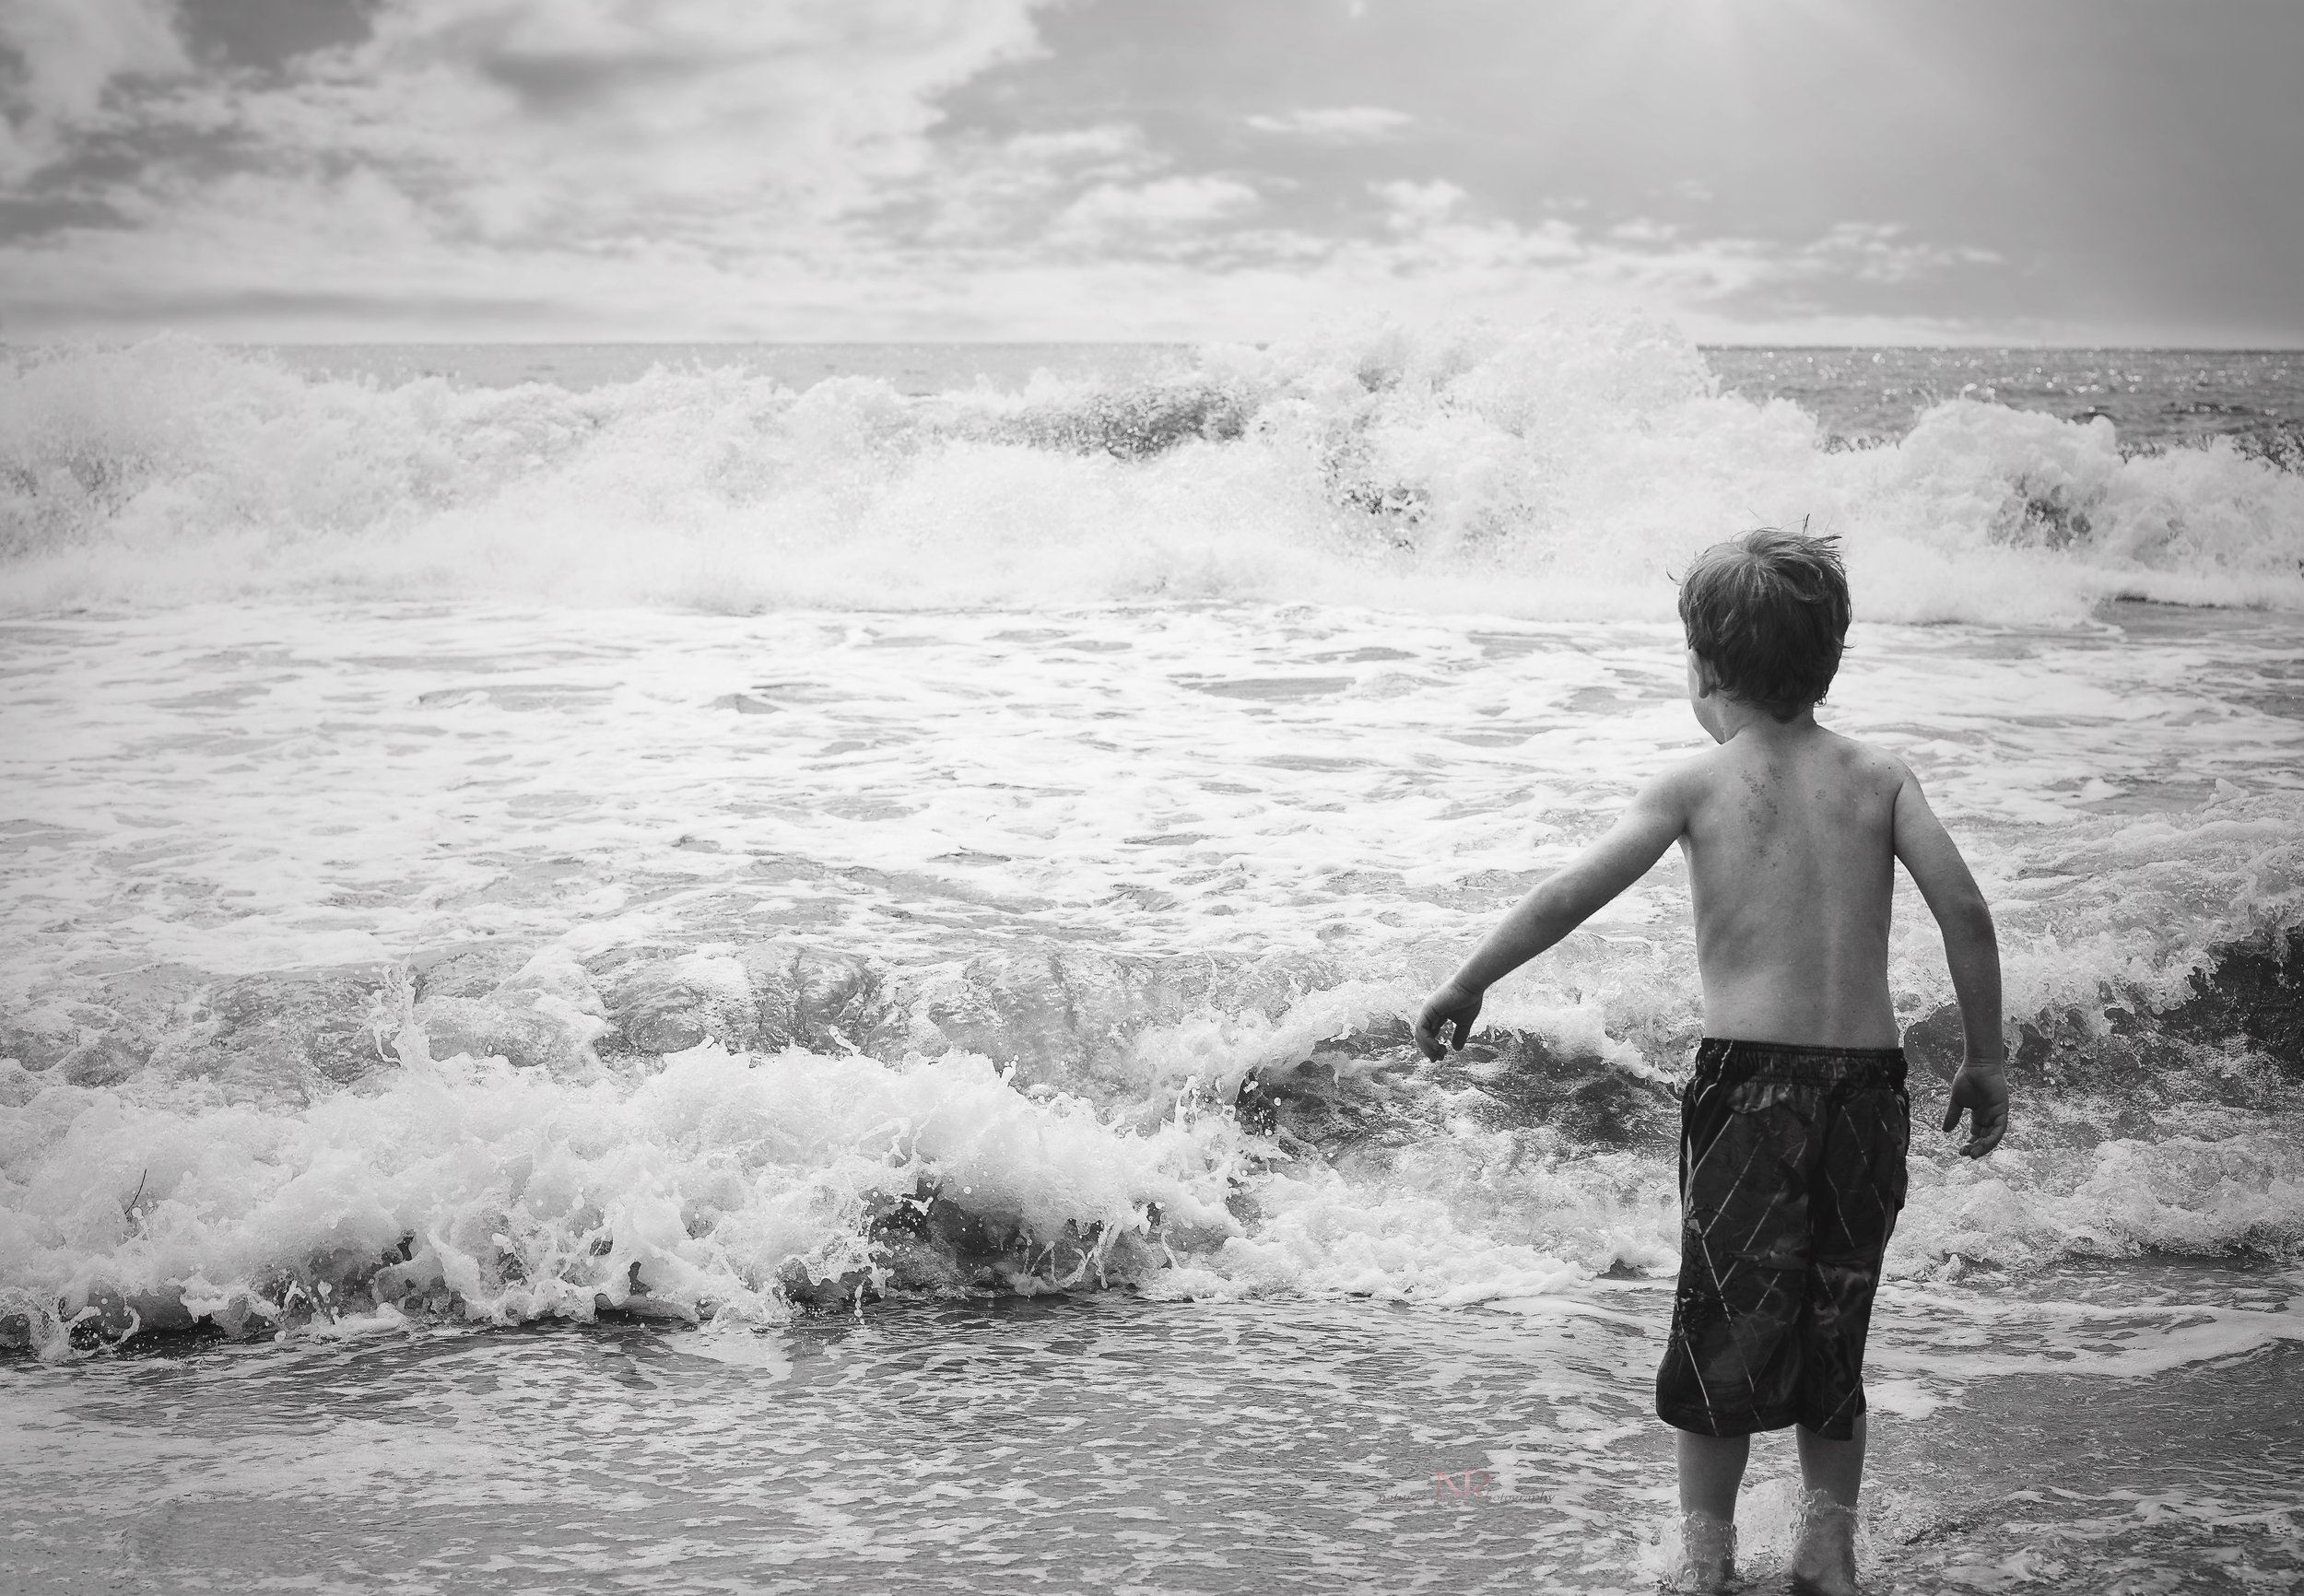 My favorite image from the beach. I will hang this one!